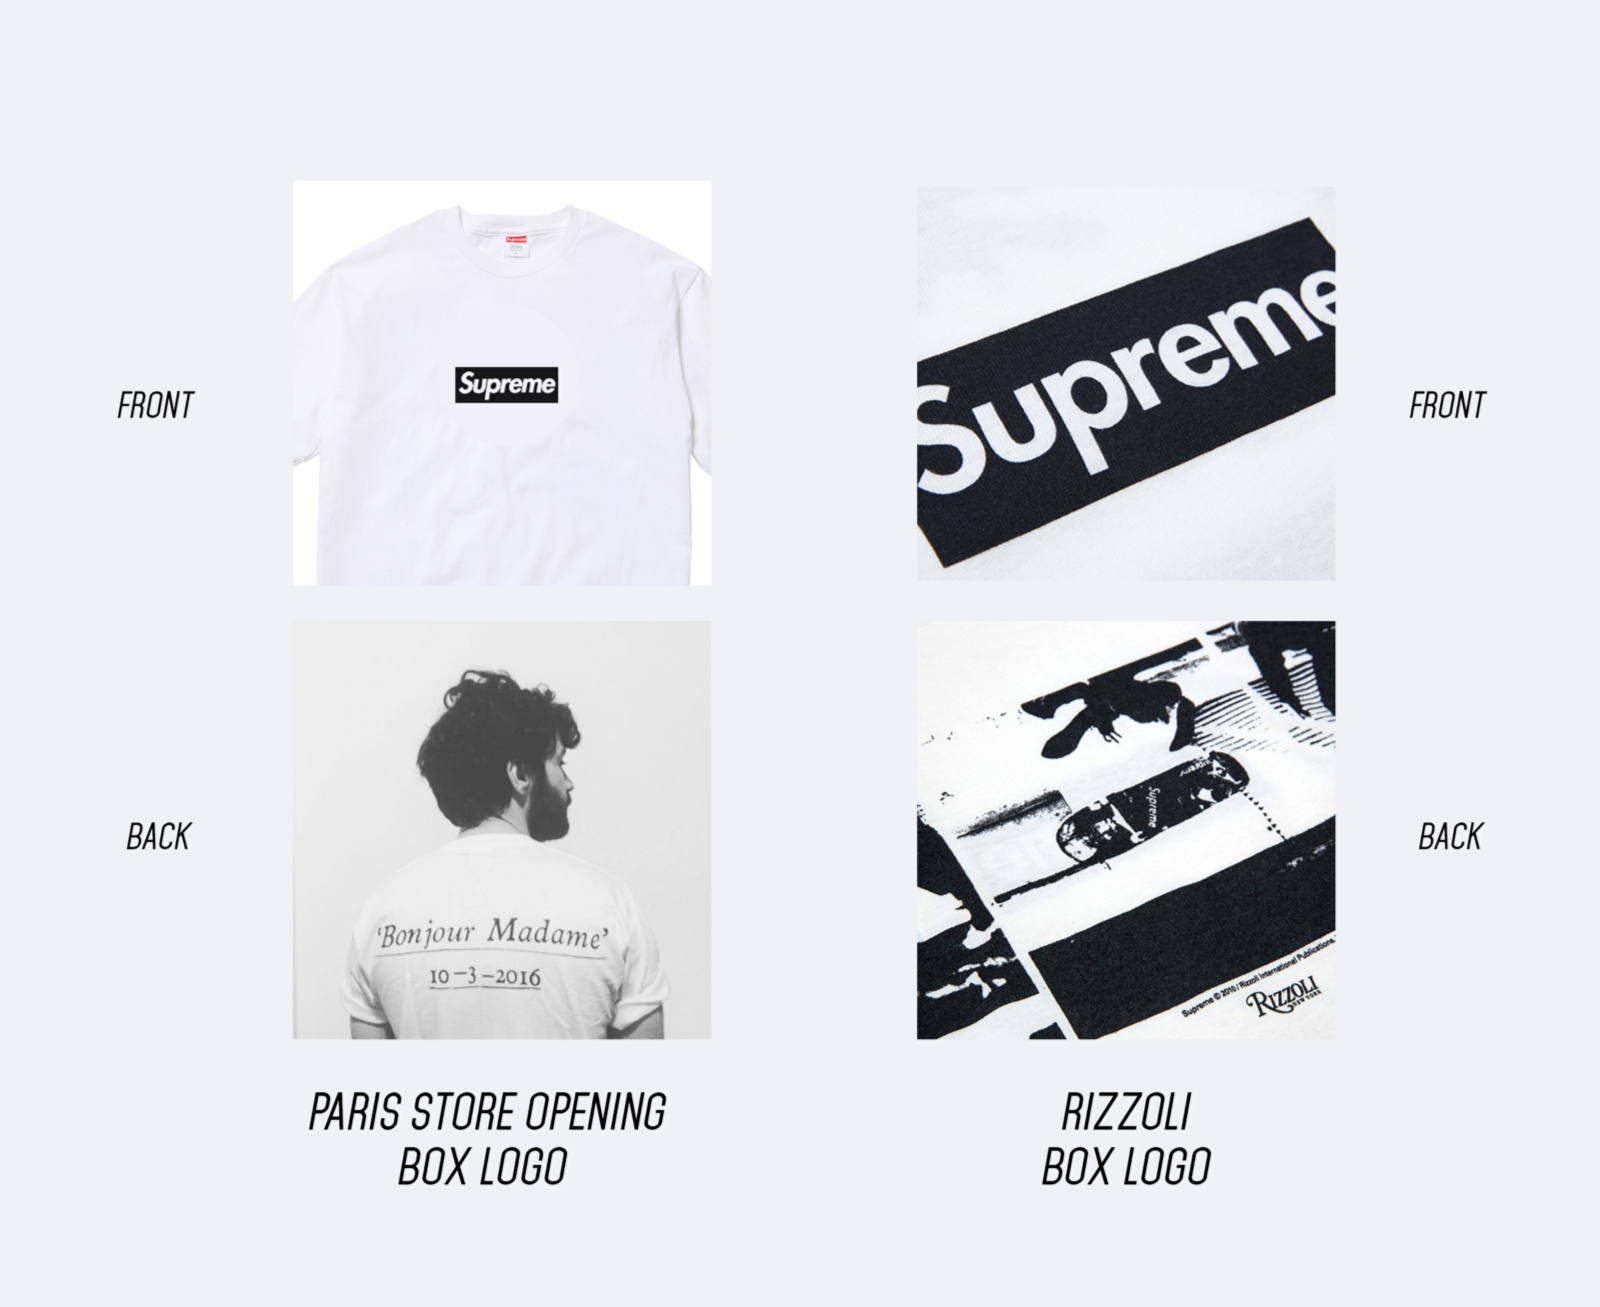 Design t shirt for resale - So While In Essence There May Be A Lot Of Different Supreme Shirts In The Market There Are Very Limited Supreme Shirts Of A Specific Design